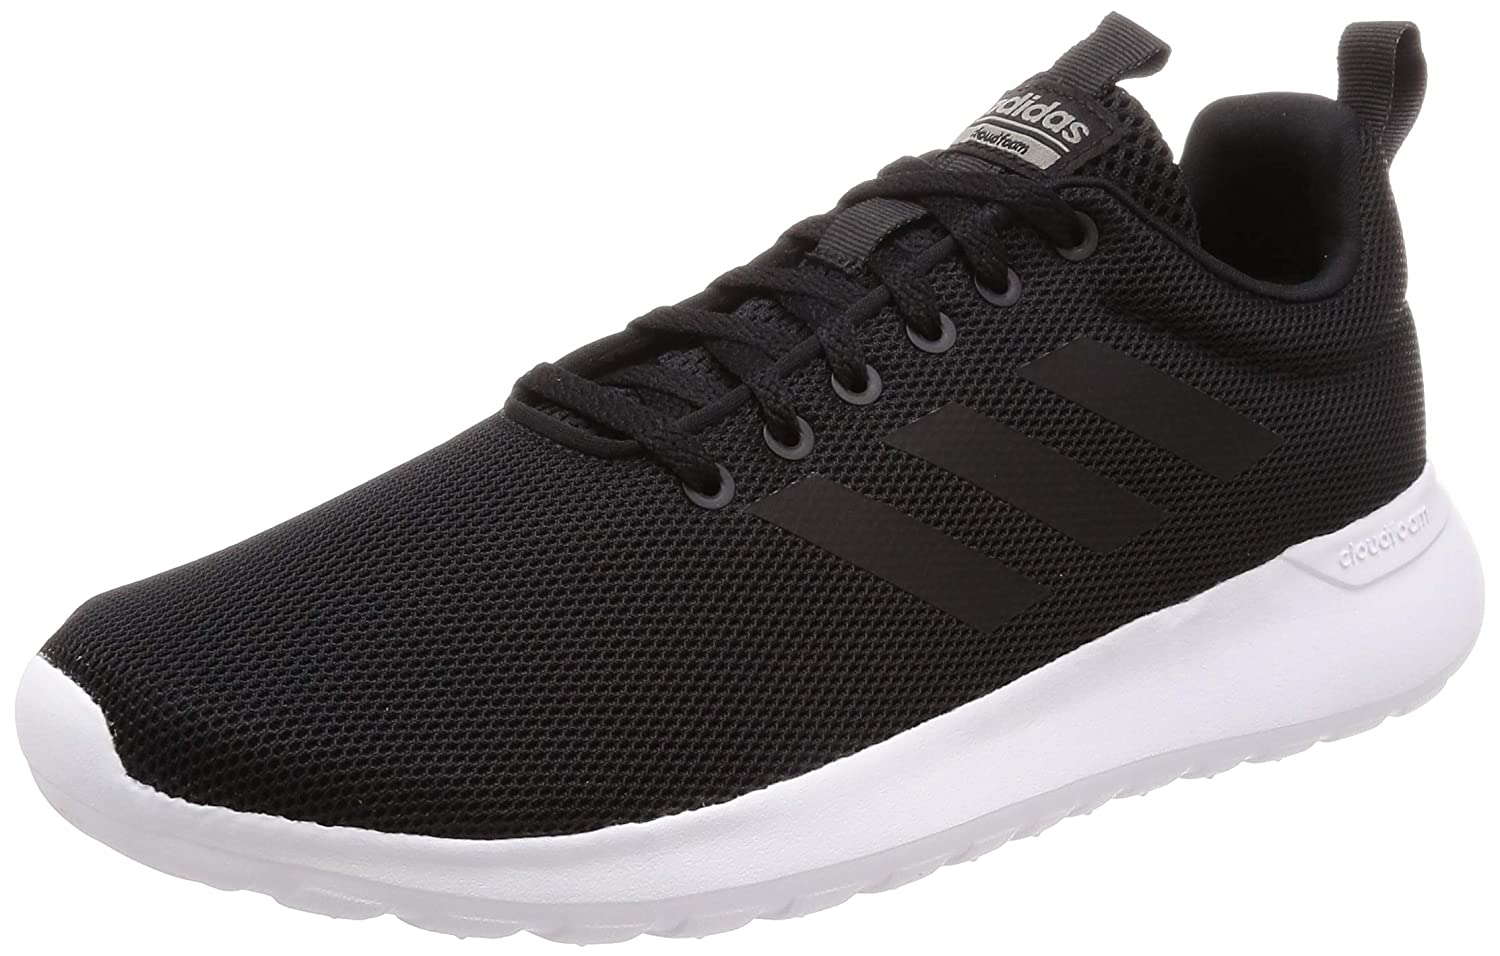 Buy Adidas Women's Running Shoes at